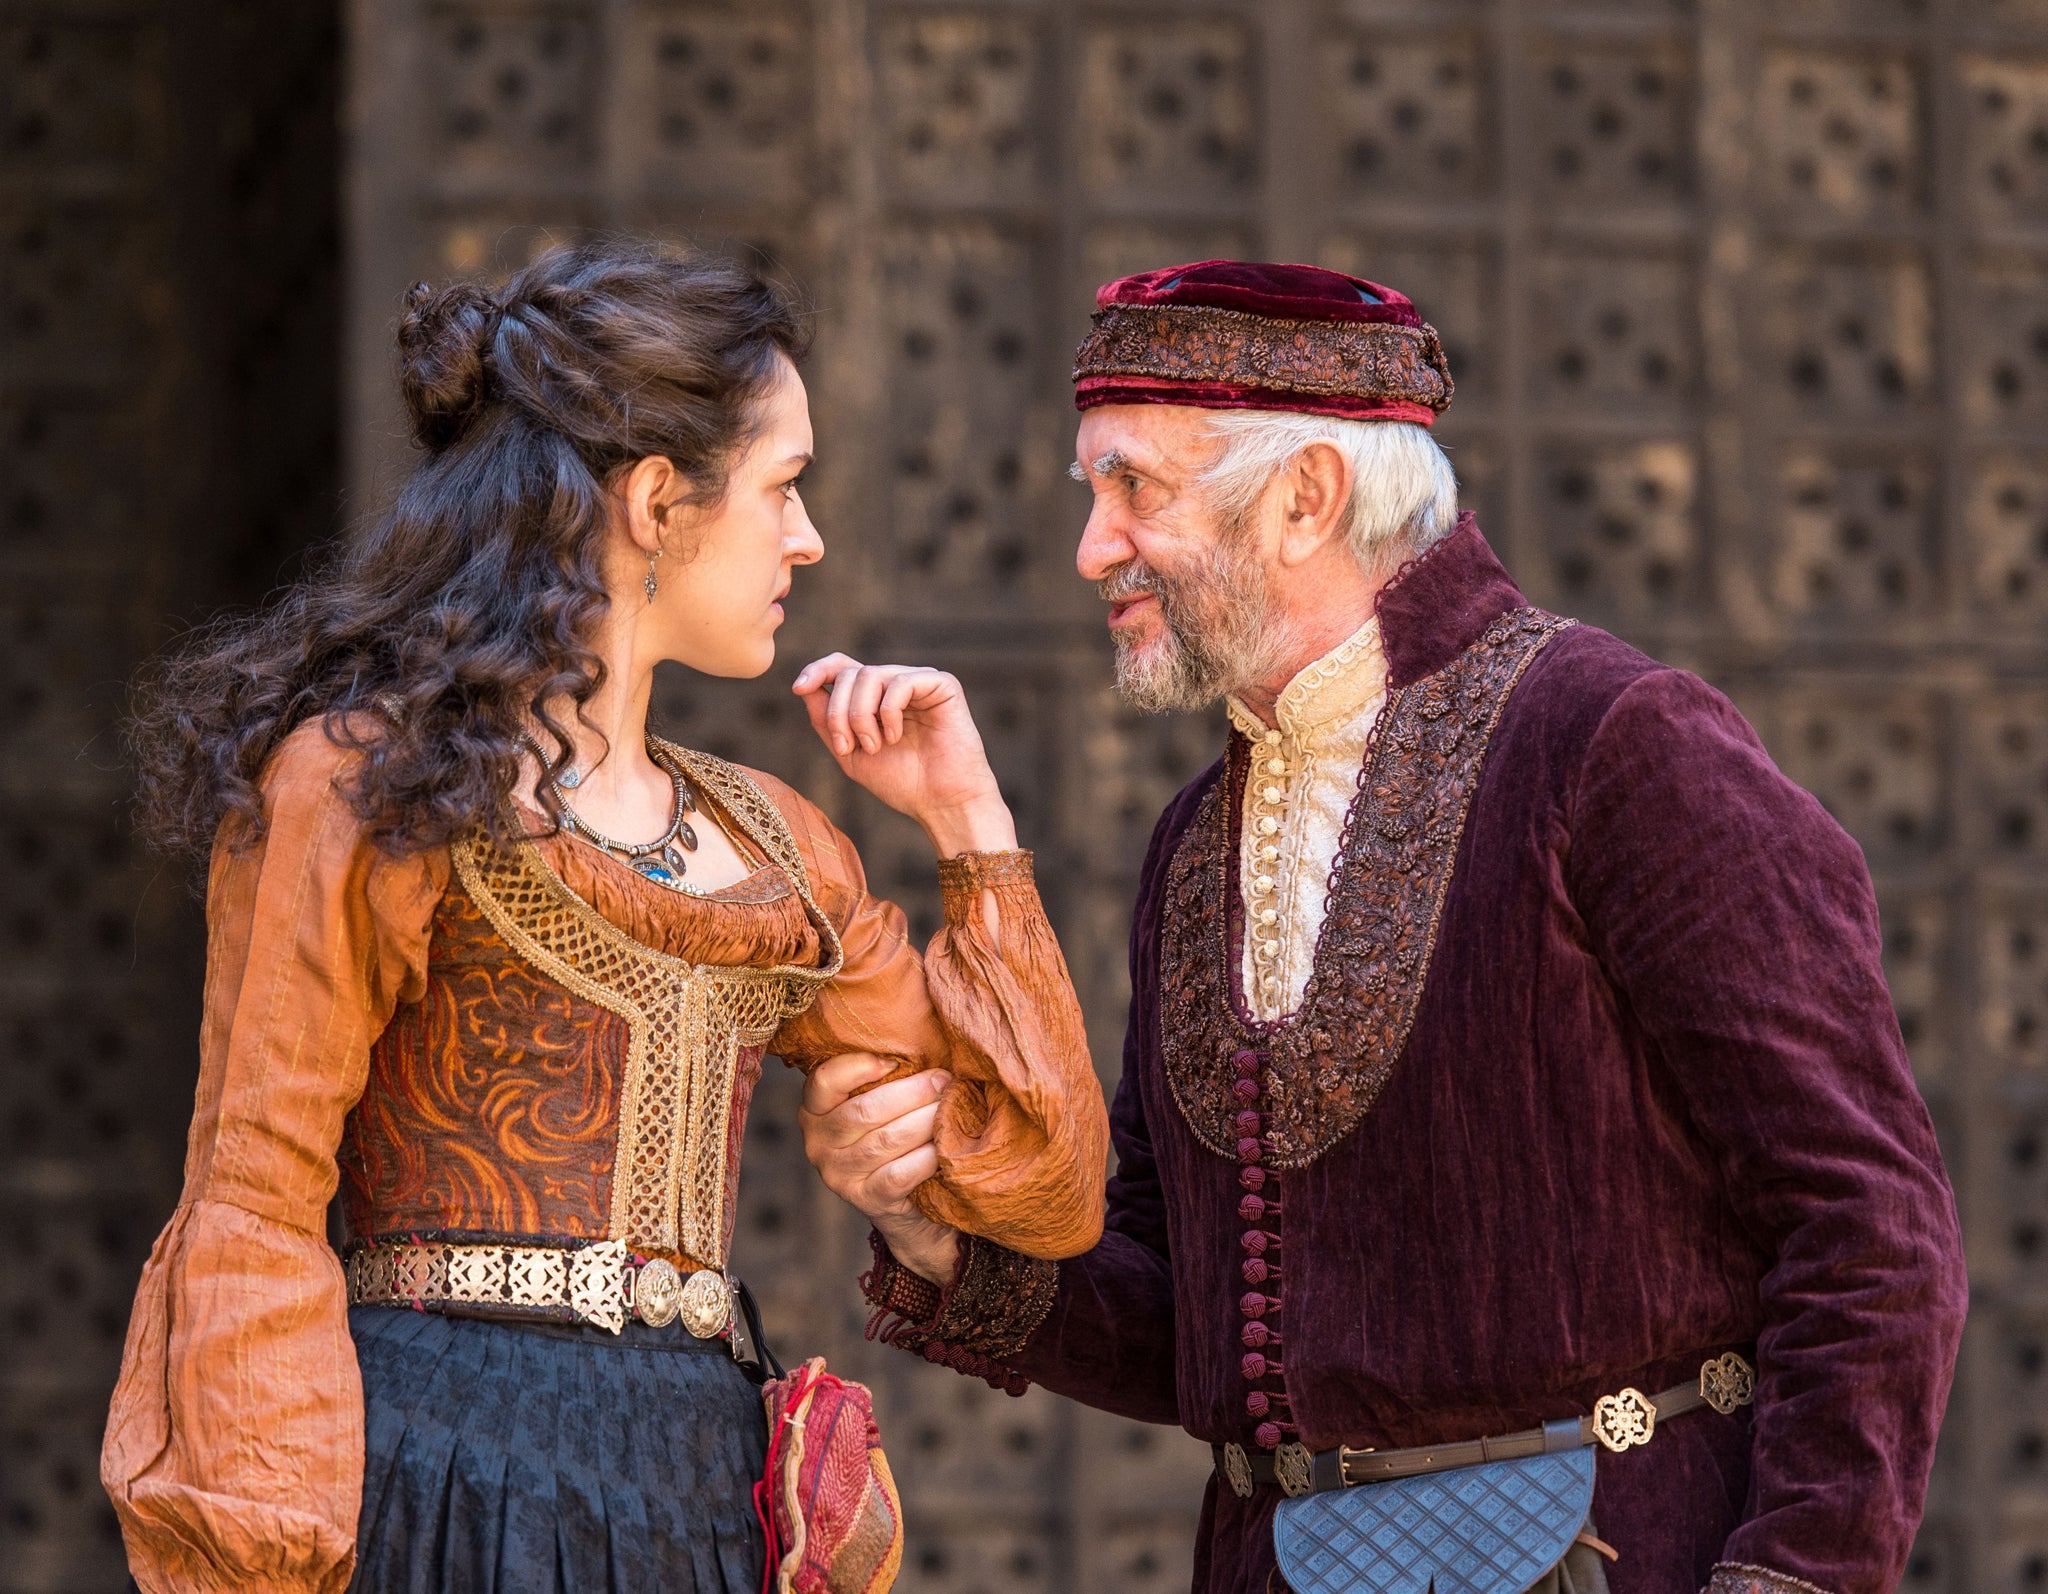 the secular and religious views of characters antonio and shylock in the play merchant of venice